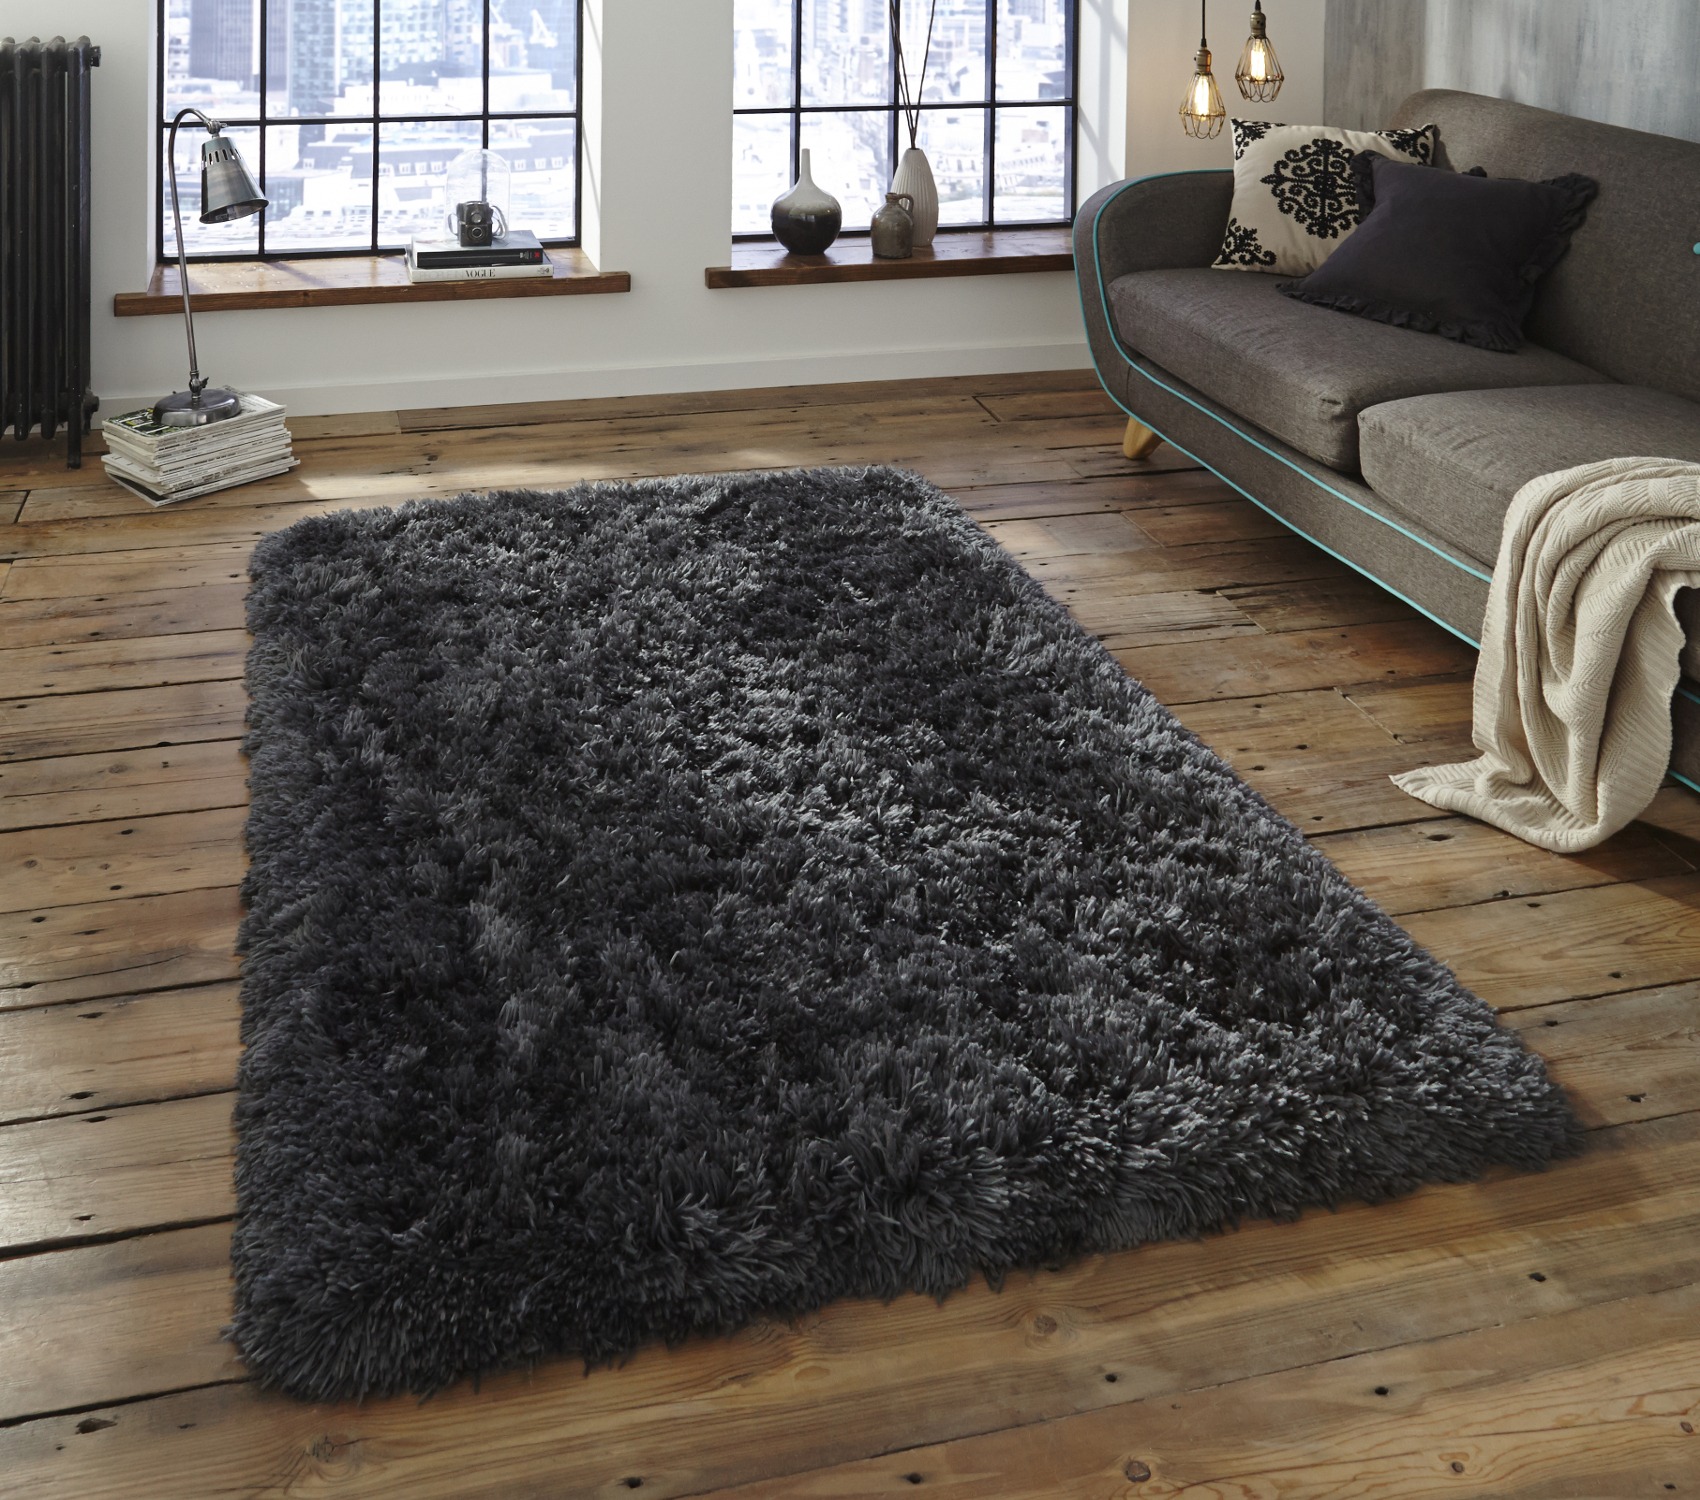 Polar Hand Tufted Shaggy Rug Thick Pile Soft 100